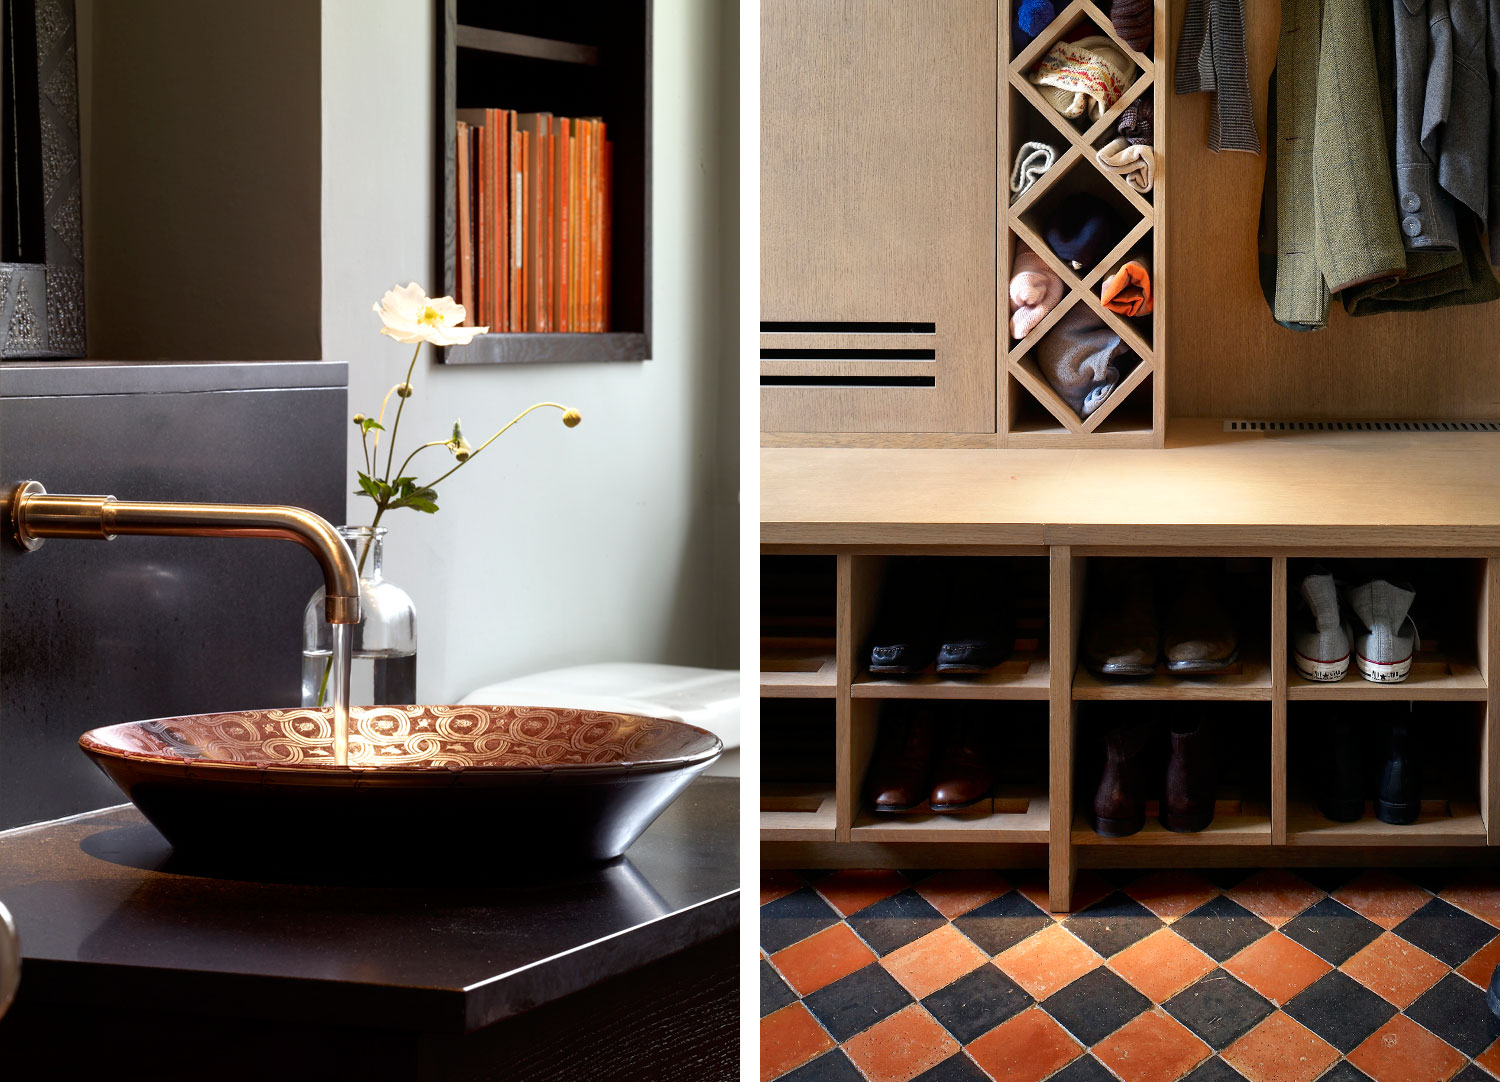 Jill Scholes Interior Design, Oxfordshire Country House, details of cloakroom and custom joinery for boots and coat storage